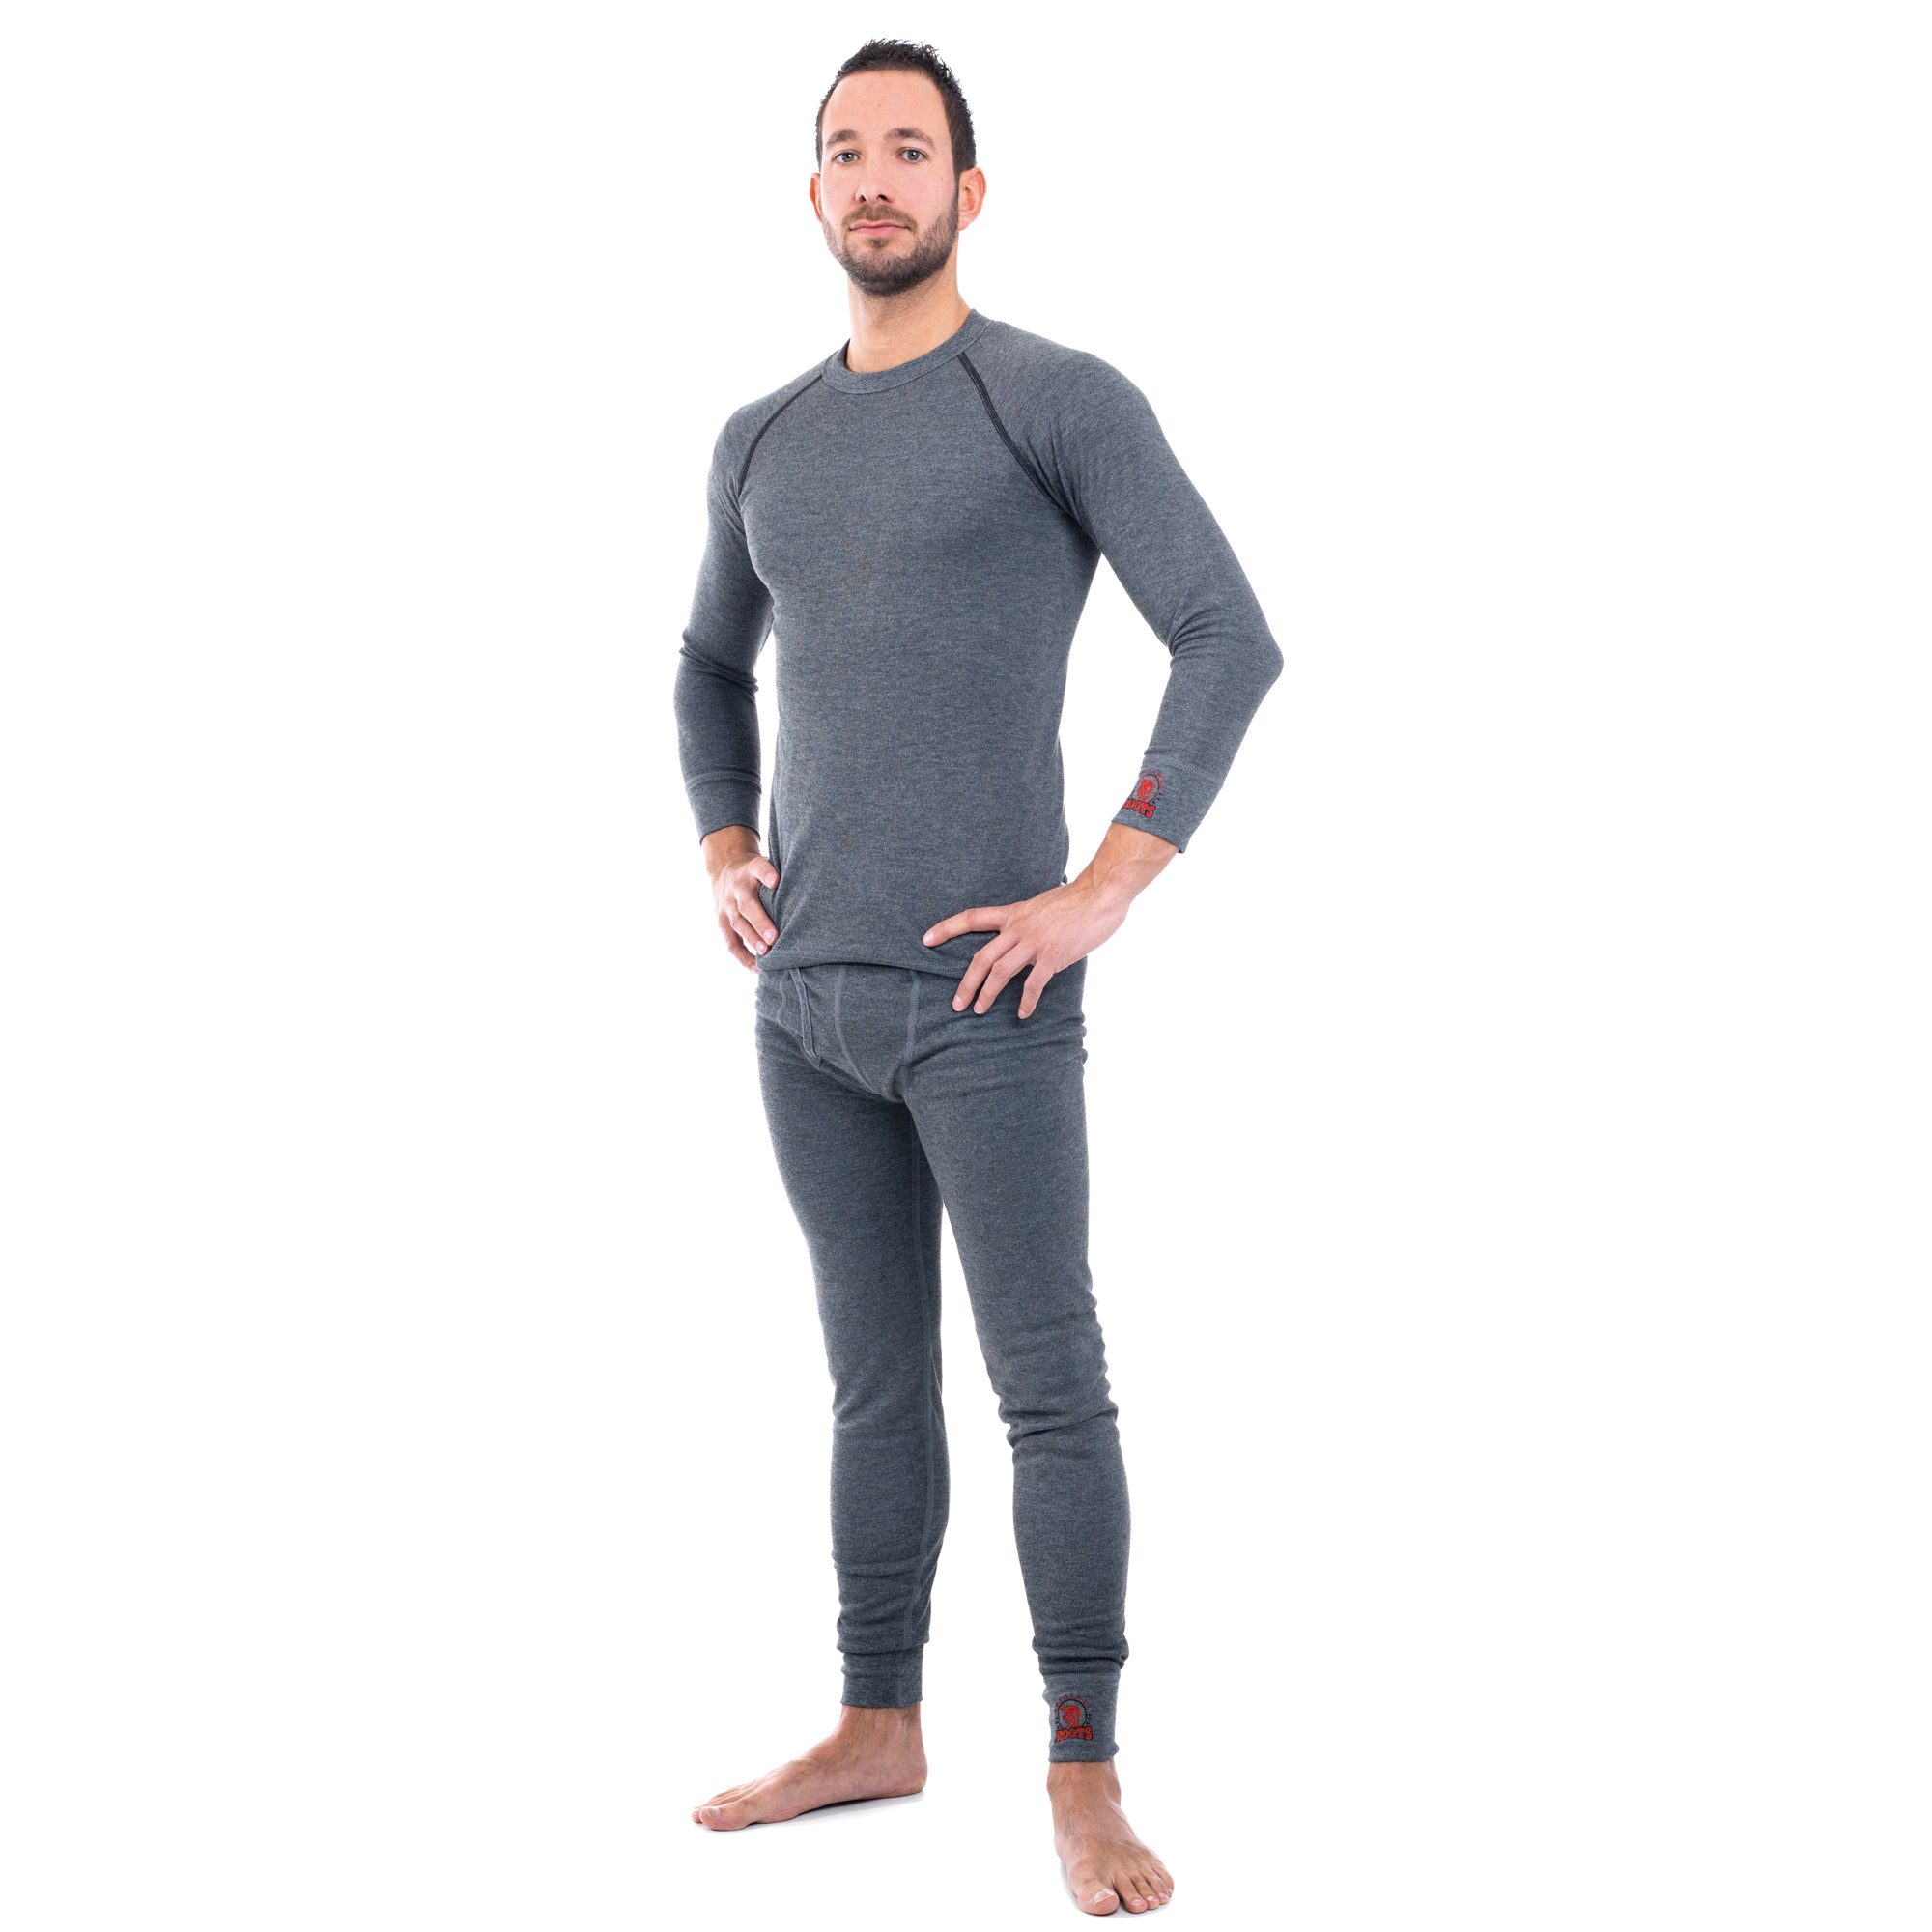 ROOTS ARC RATED MEN'S UNDERWEAR SHIRT LONG SLEEVE AND LONG JOHNS - 4.8 CAL/CM²